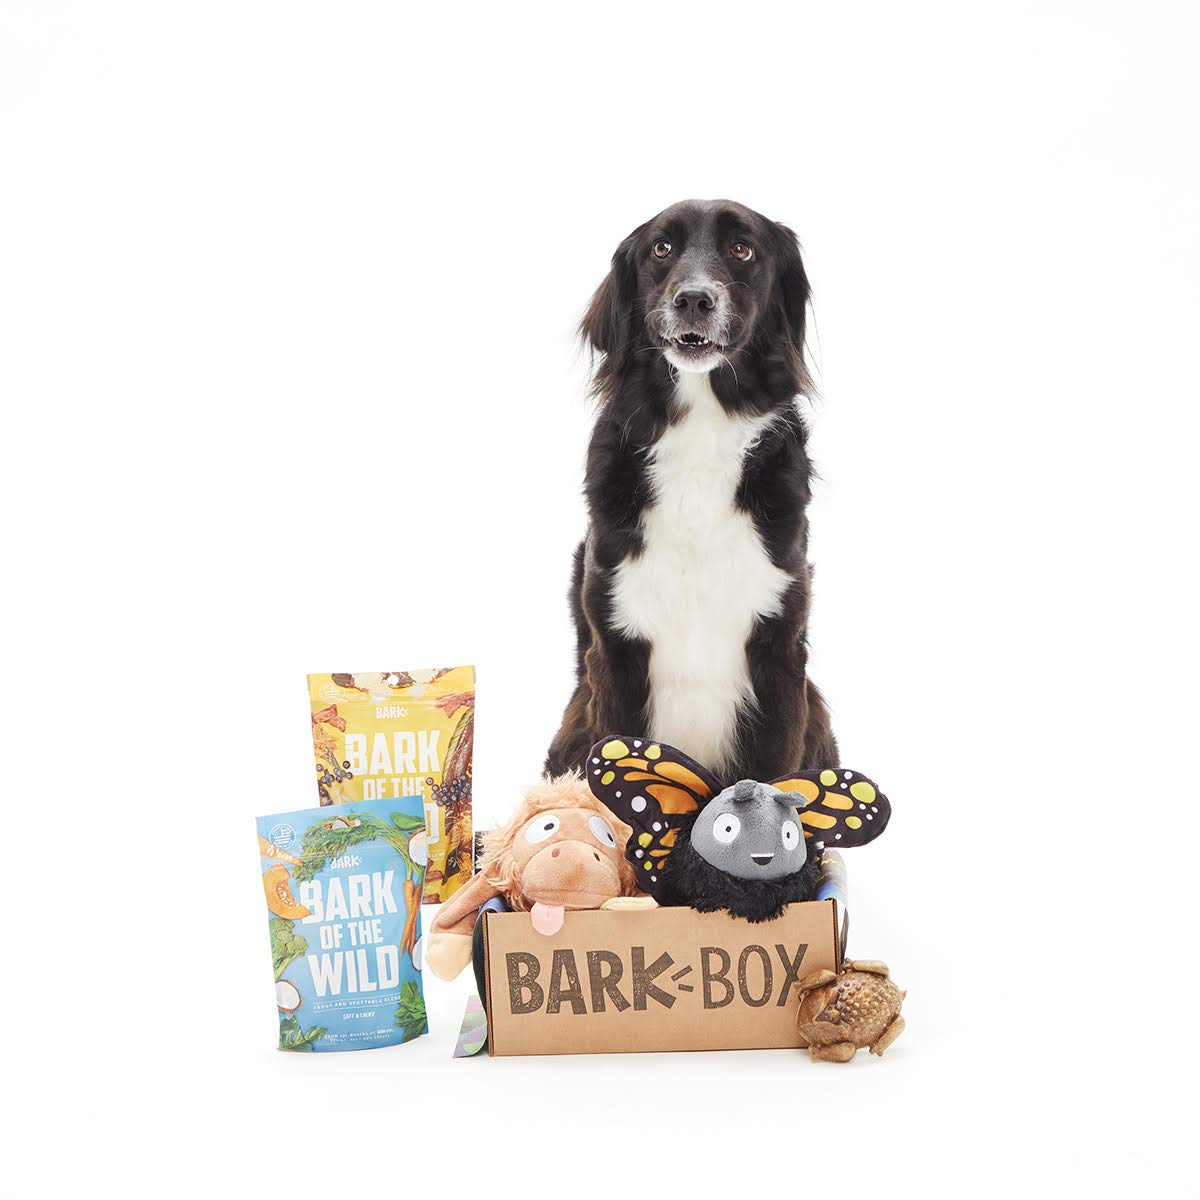 BarkBox Large Rainfurrest Dog Toy & Treat Bundle Assortment - Plush Toys, Squeaker Toys, All-Natural Treats/Chews Made in The USA